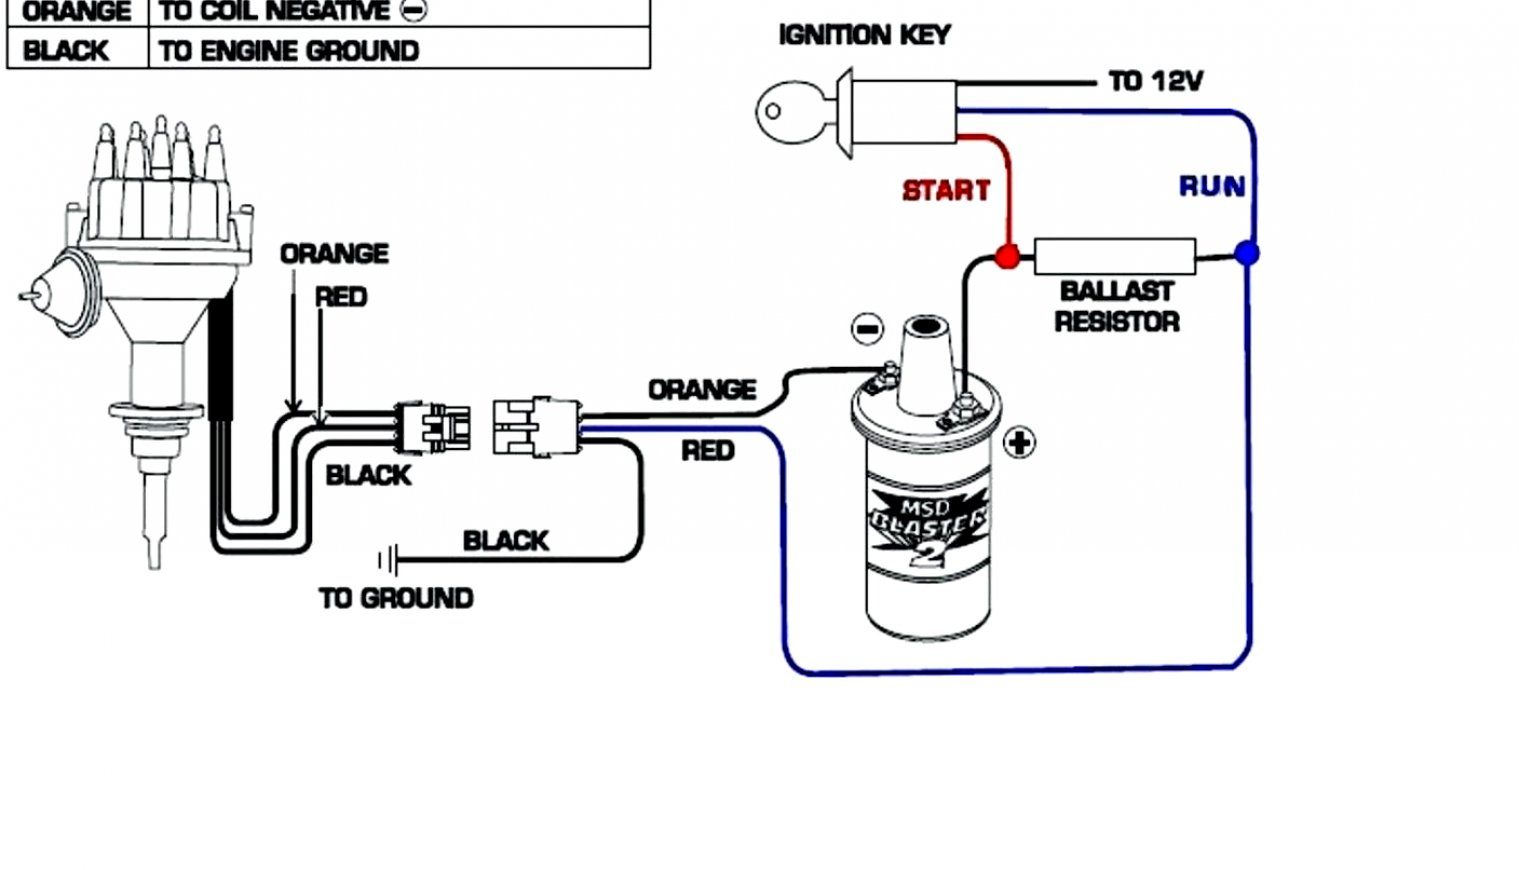 Fan Capacitor Wiring Diagram Inside - Trusted Wiring Diagram Online - Ceiling Fan Capacitor Wiring Diagram